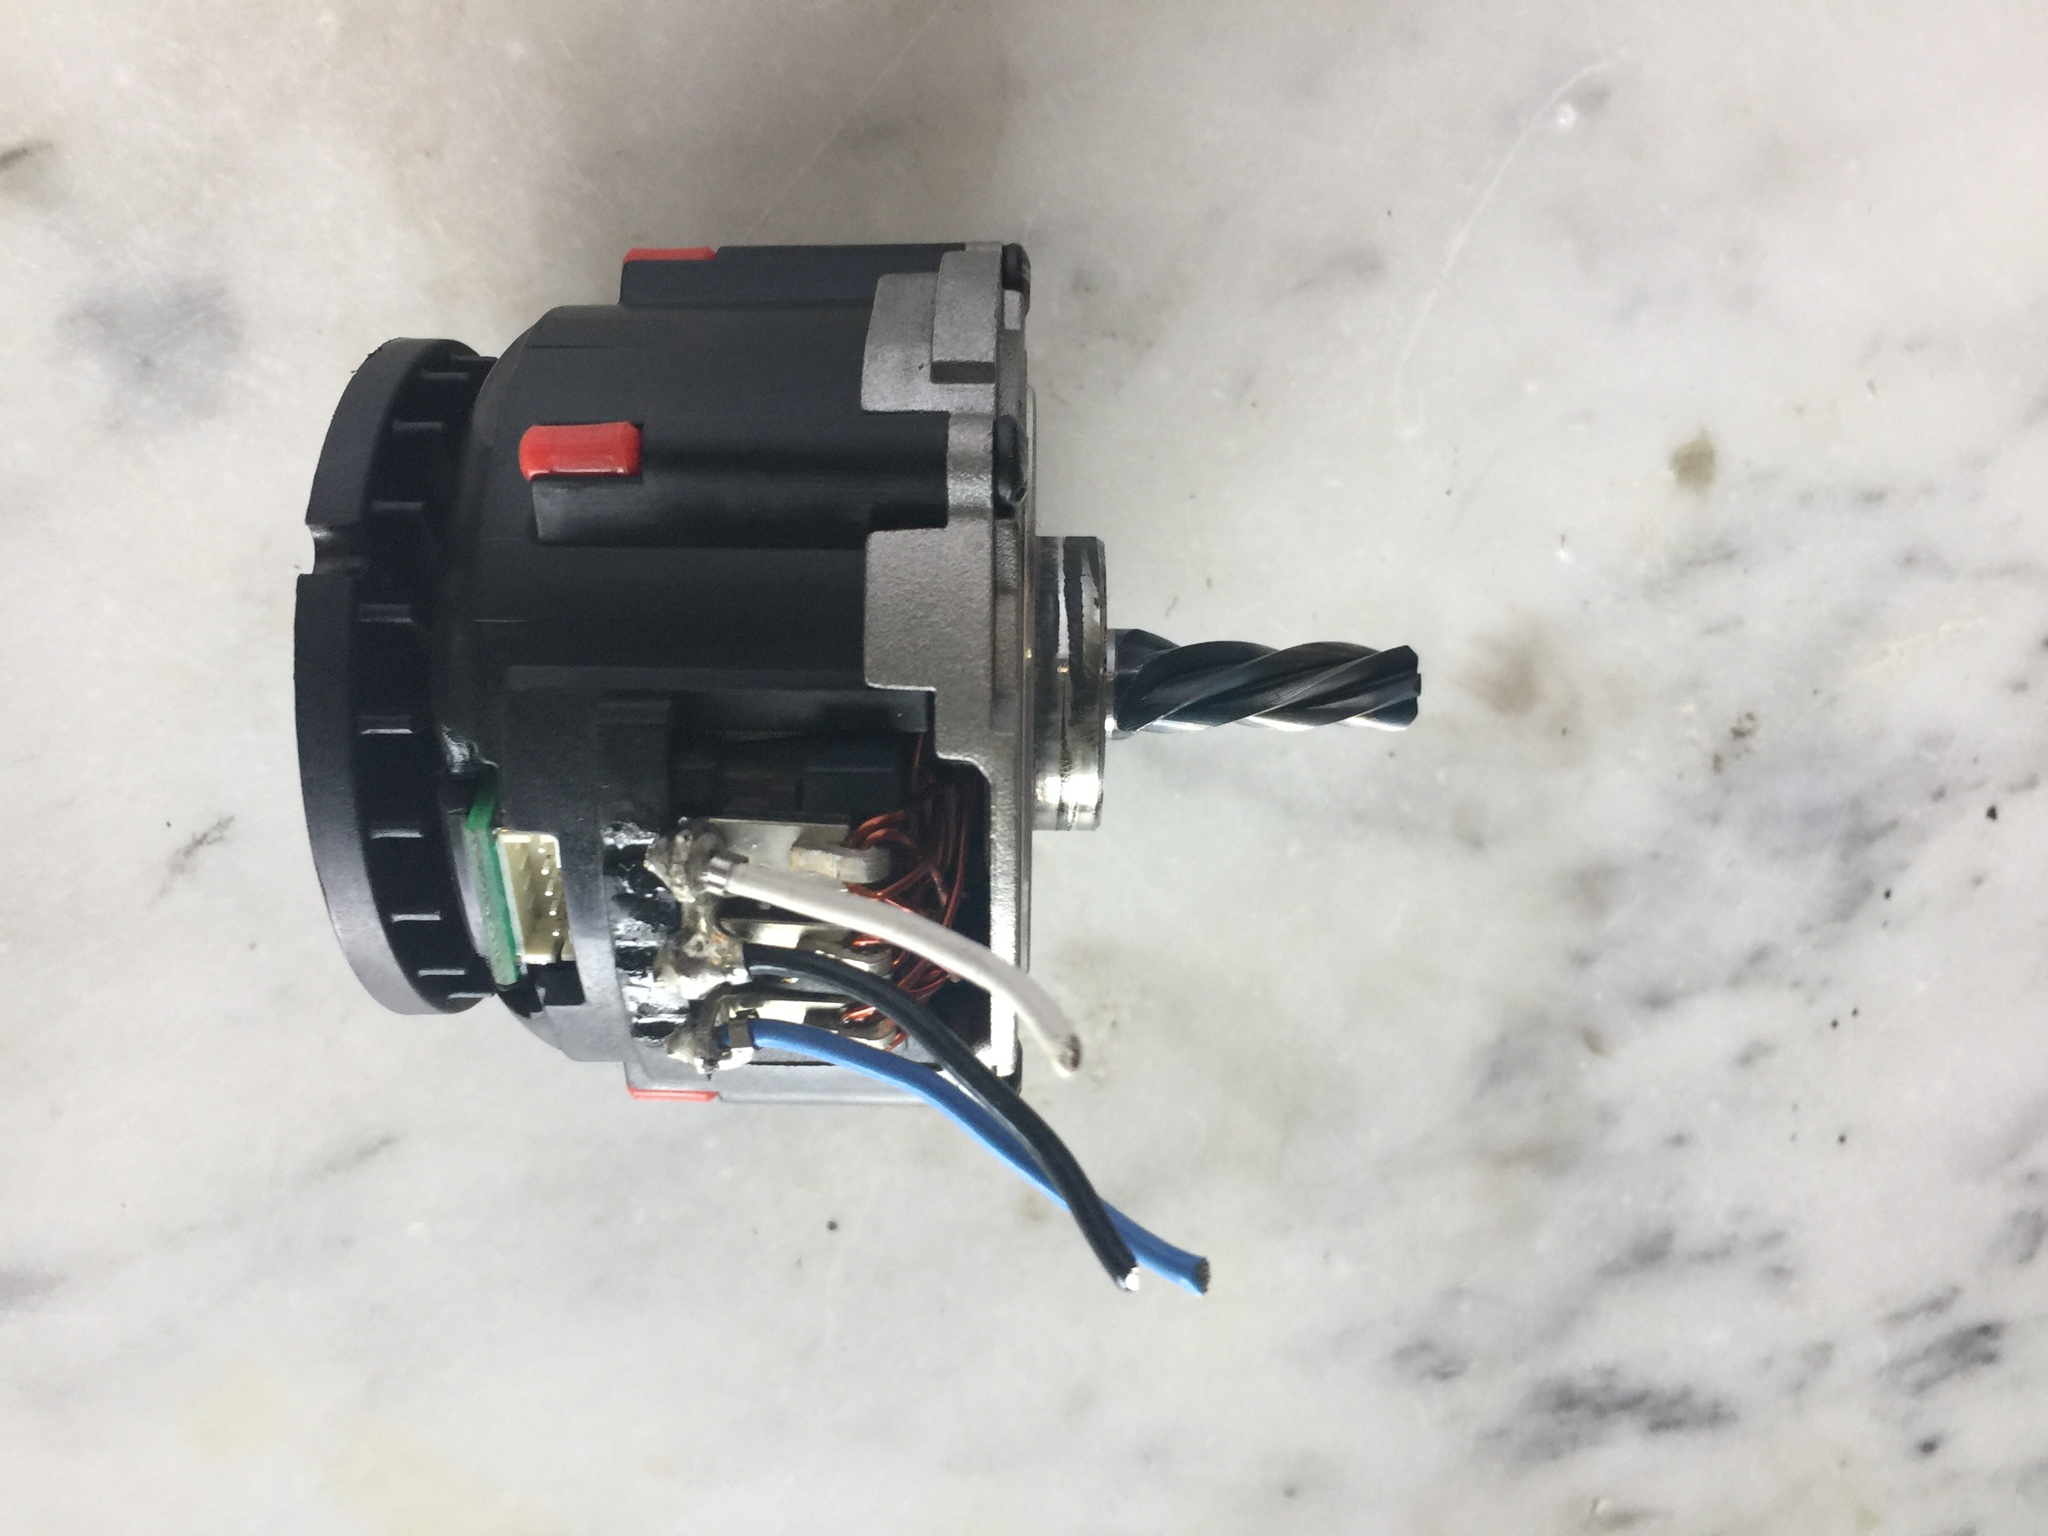 Motors dewalt 20v brushless motor the rcsparks studio for Dewalt 20v brushless motor